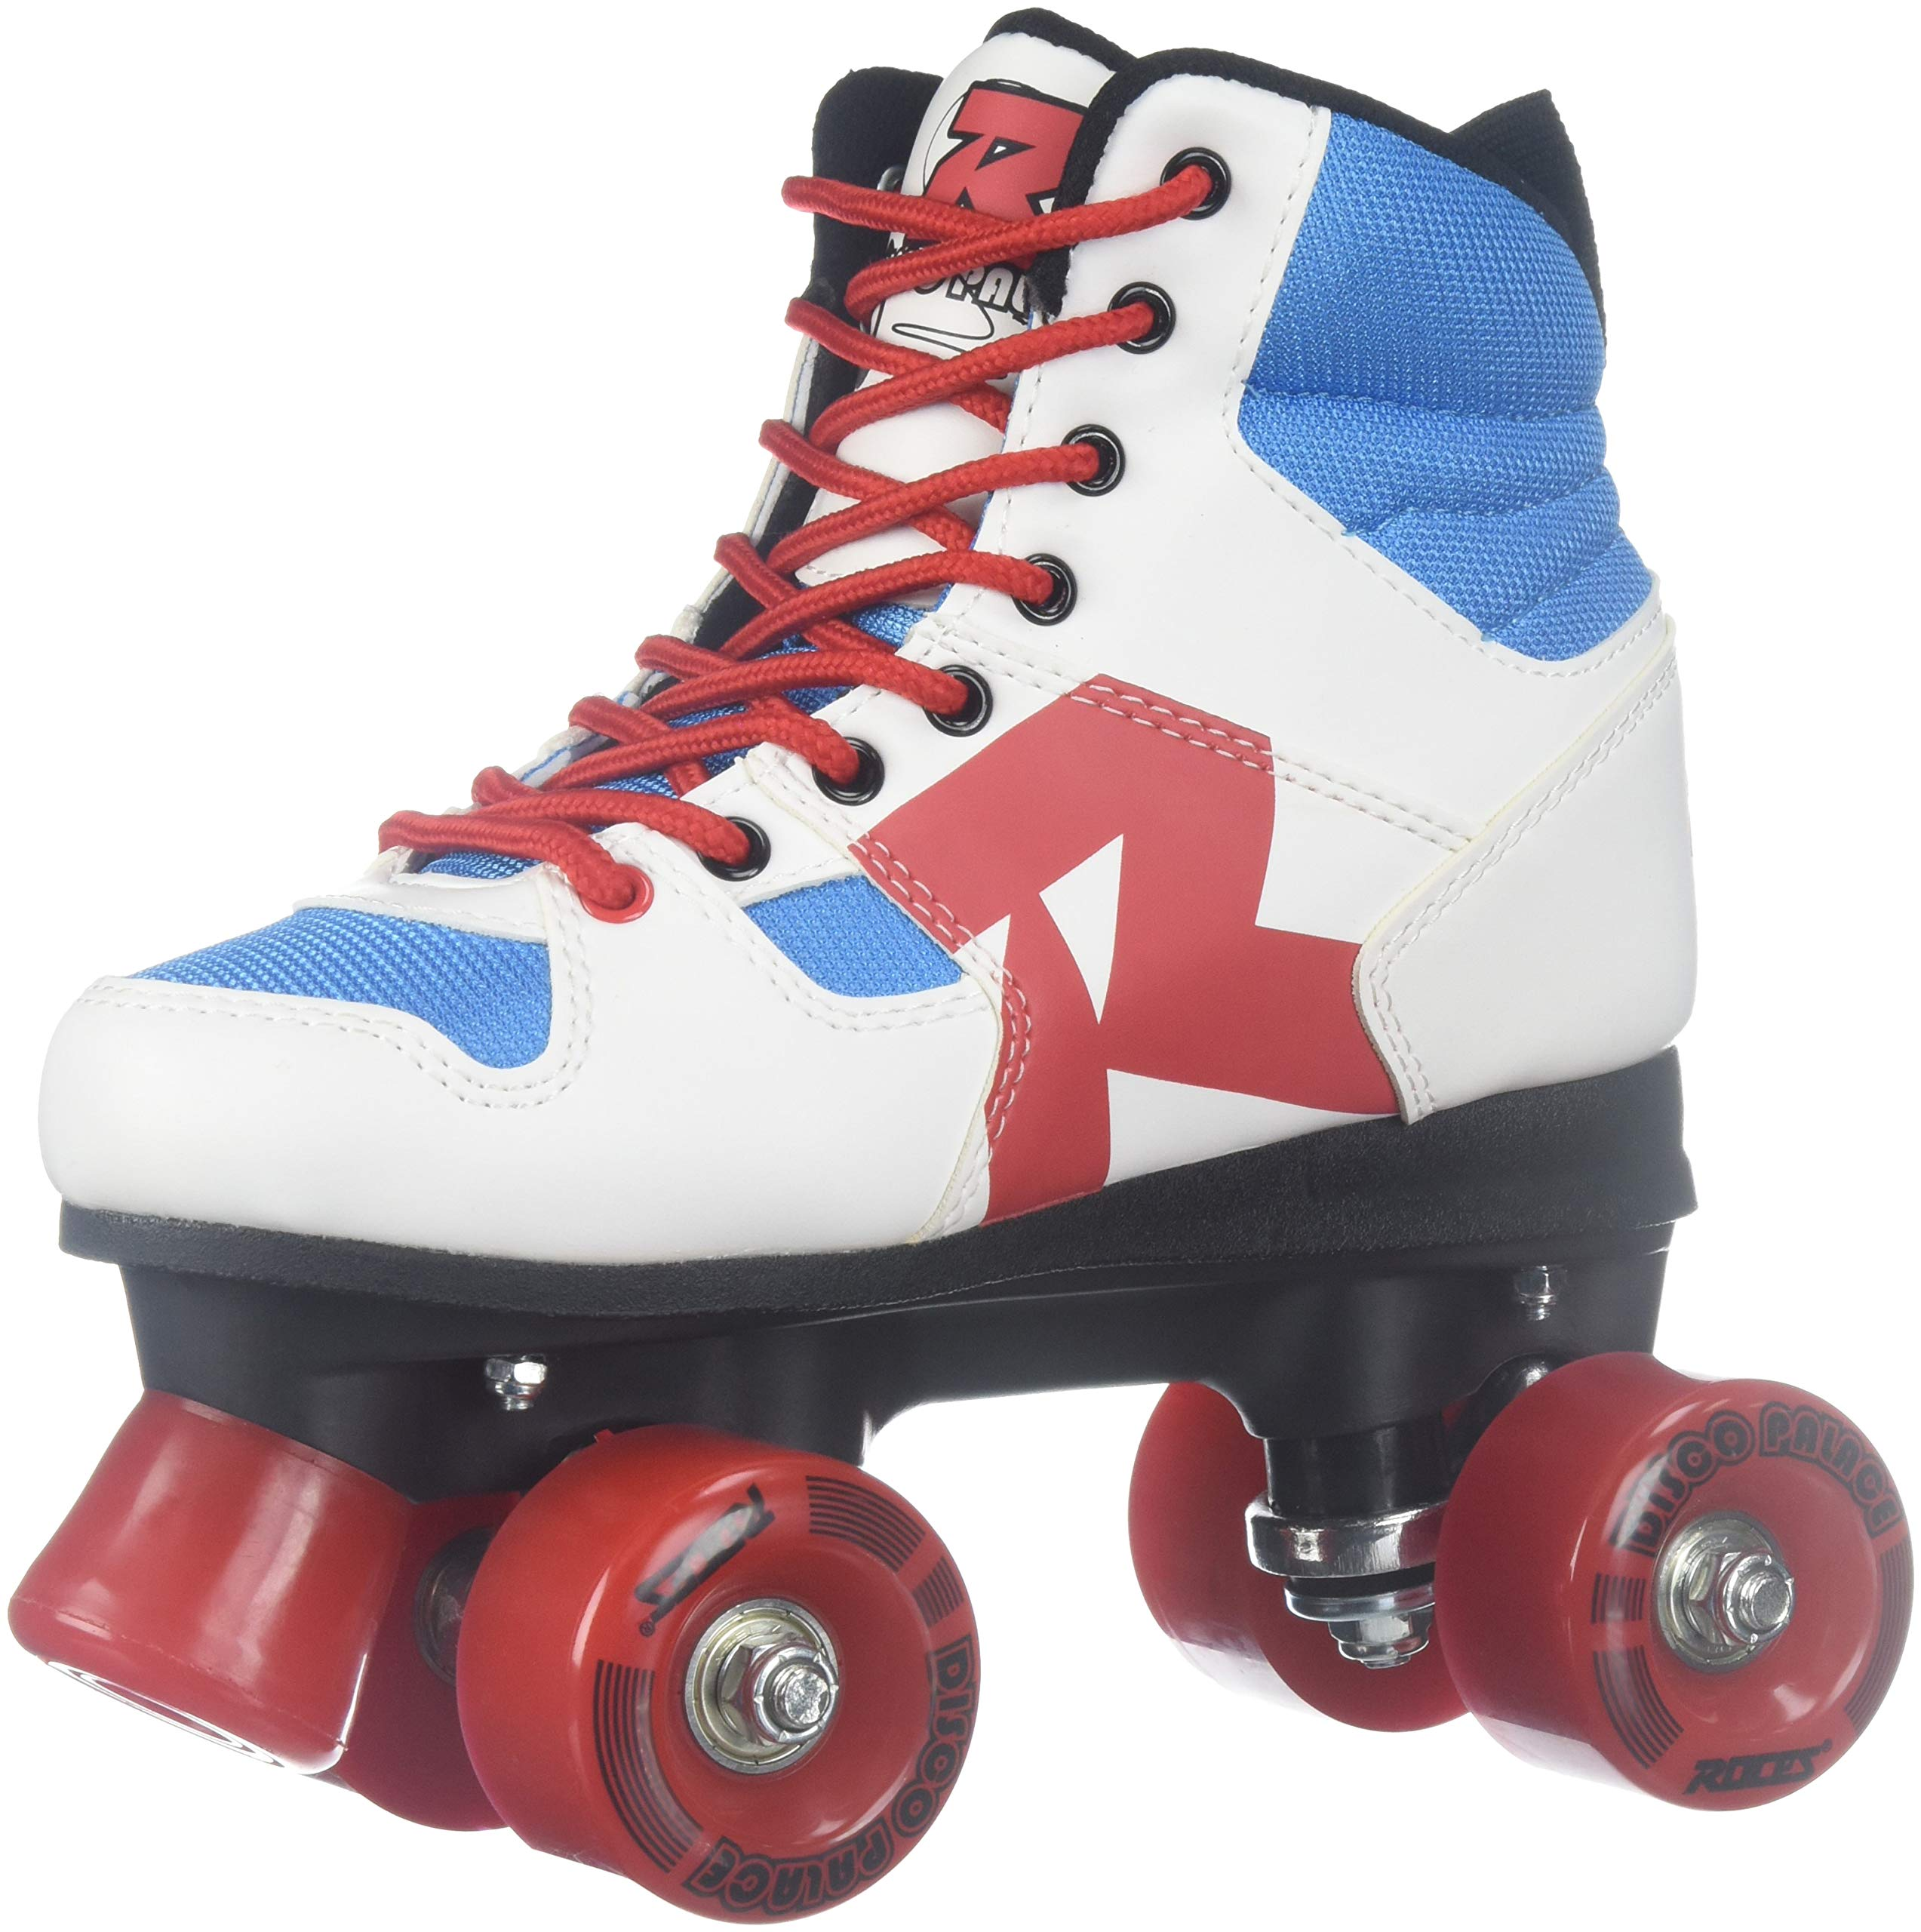 Roces 550039 Model Disco Palace Roller Skate, US 3M/5W, Red/White/Blue